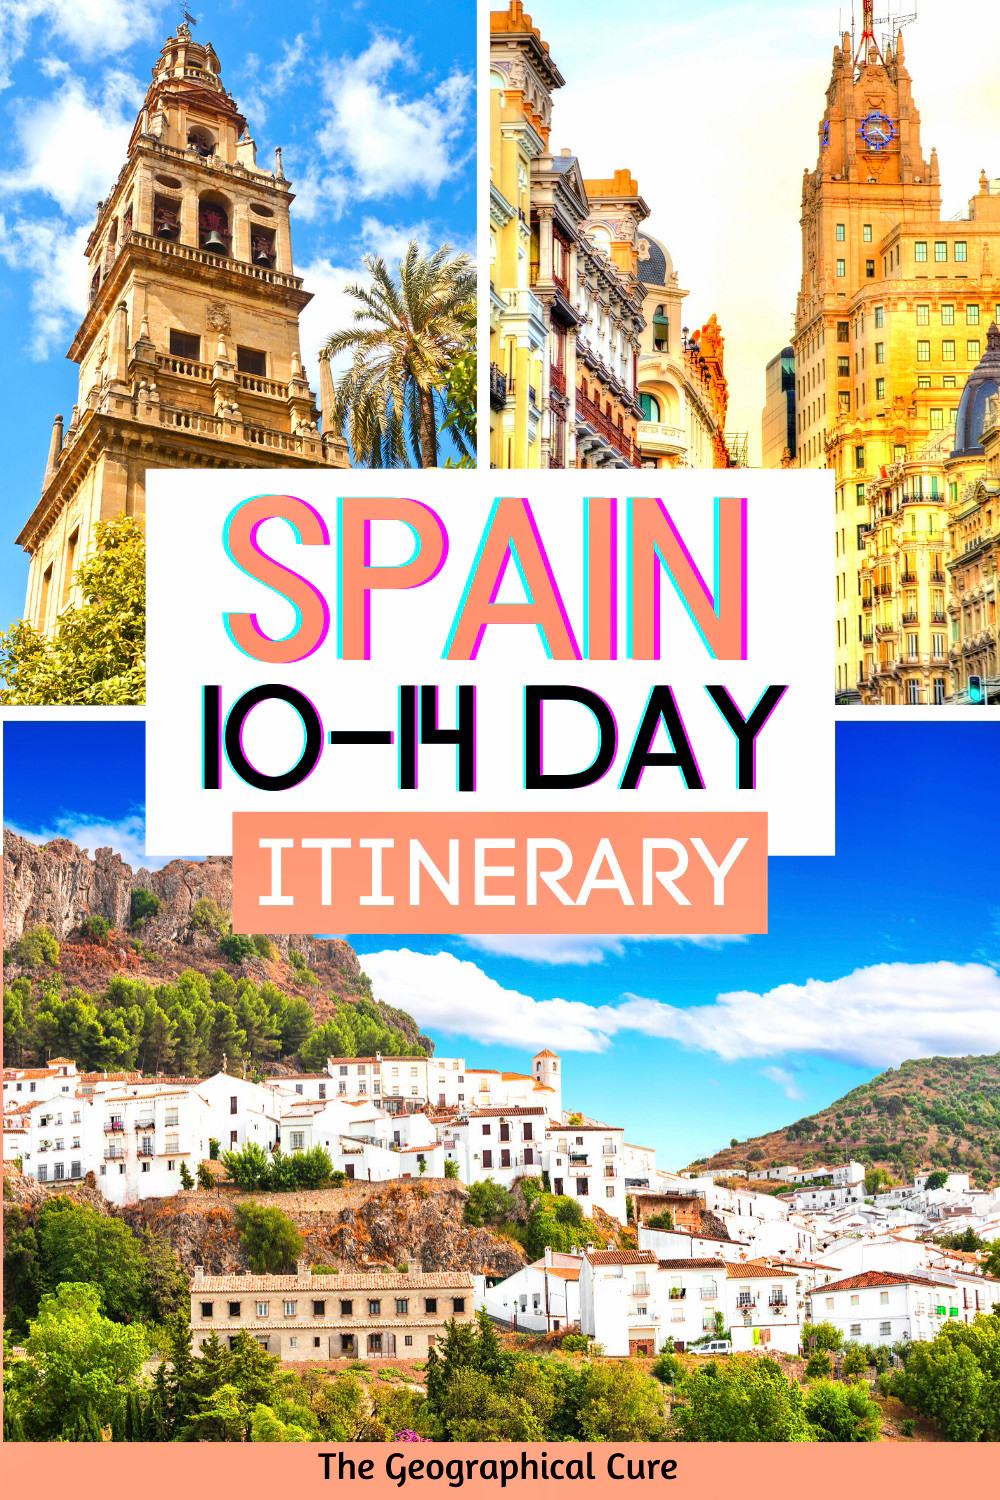 the best of Spain in a 10-14 day itinerary